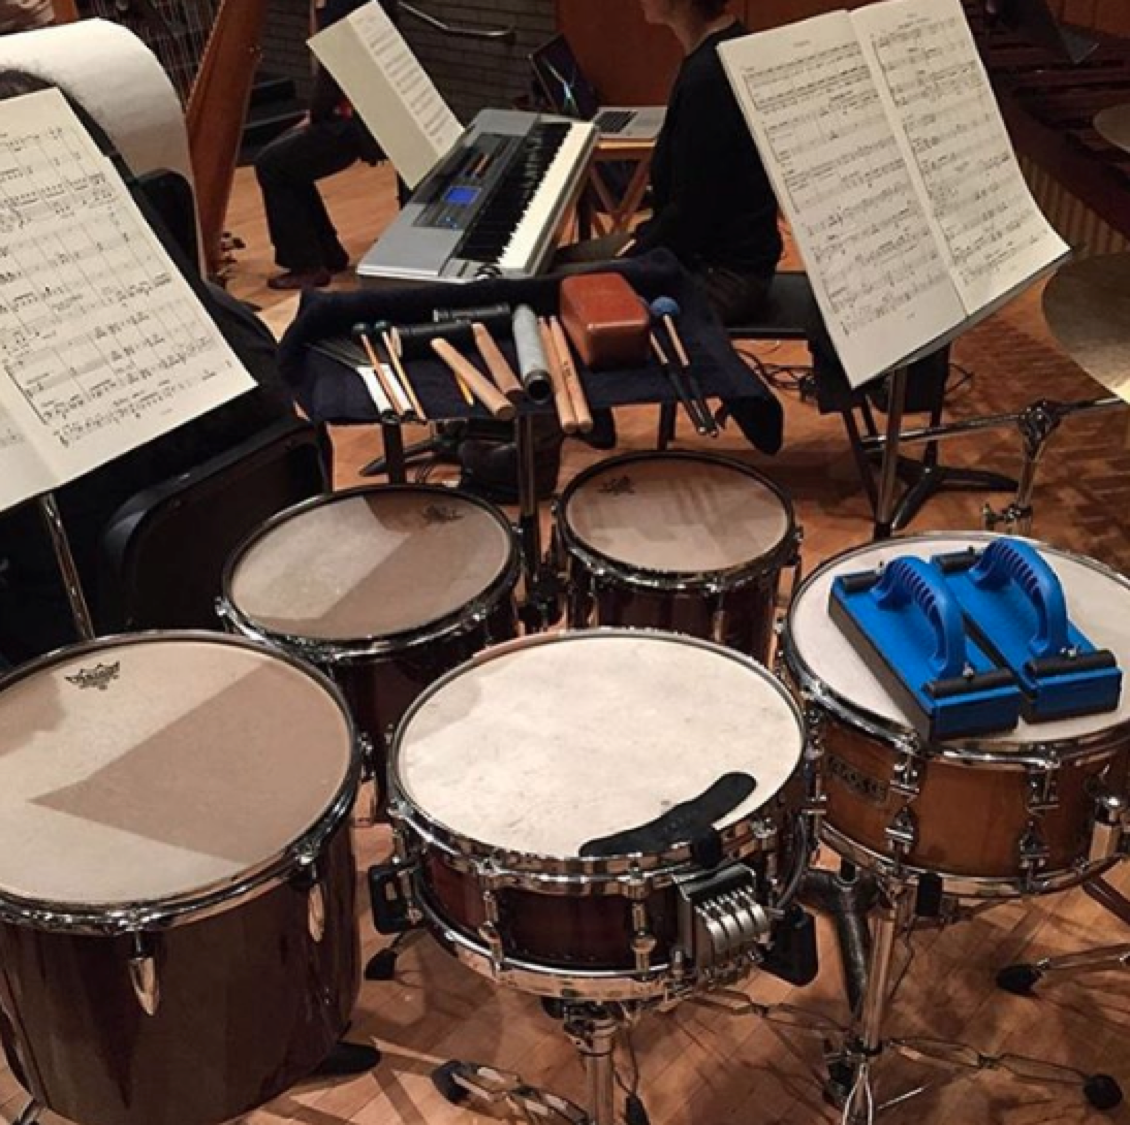 Just a peek into the life of a #UBCmusic student. Thanks to musician @gunnerwestjet for the photo!